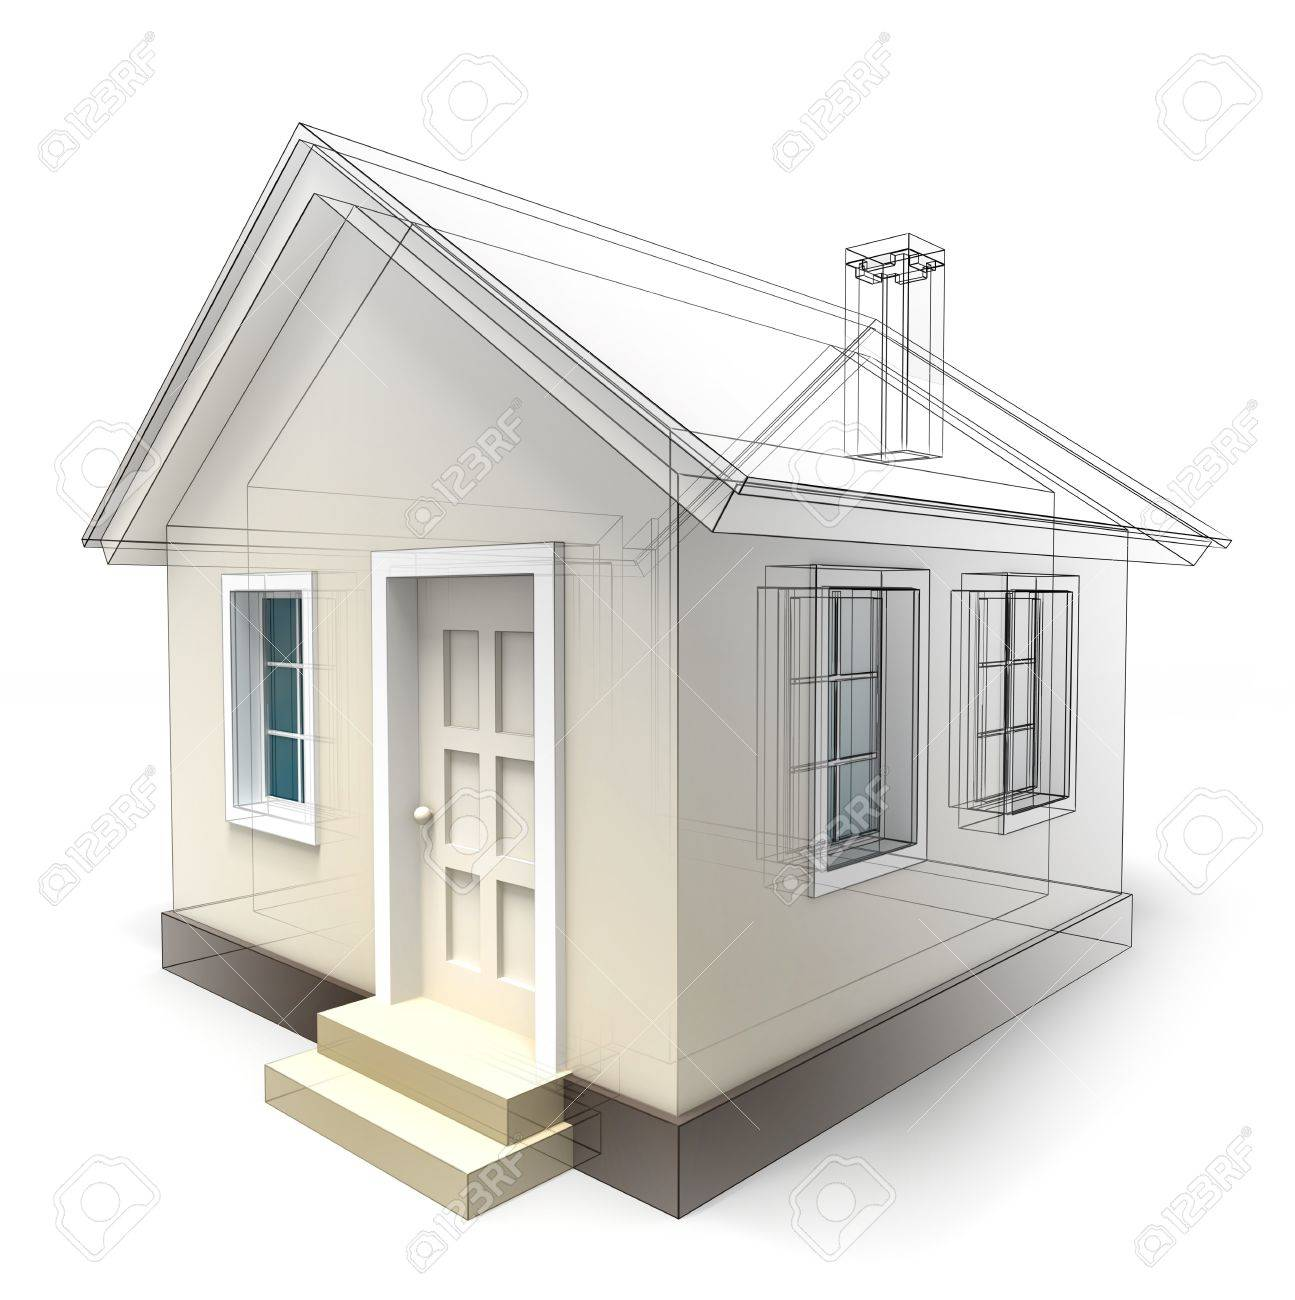 House Design Sketch On White Background Clipping Path Included Stock Photo